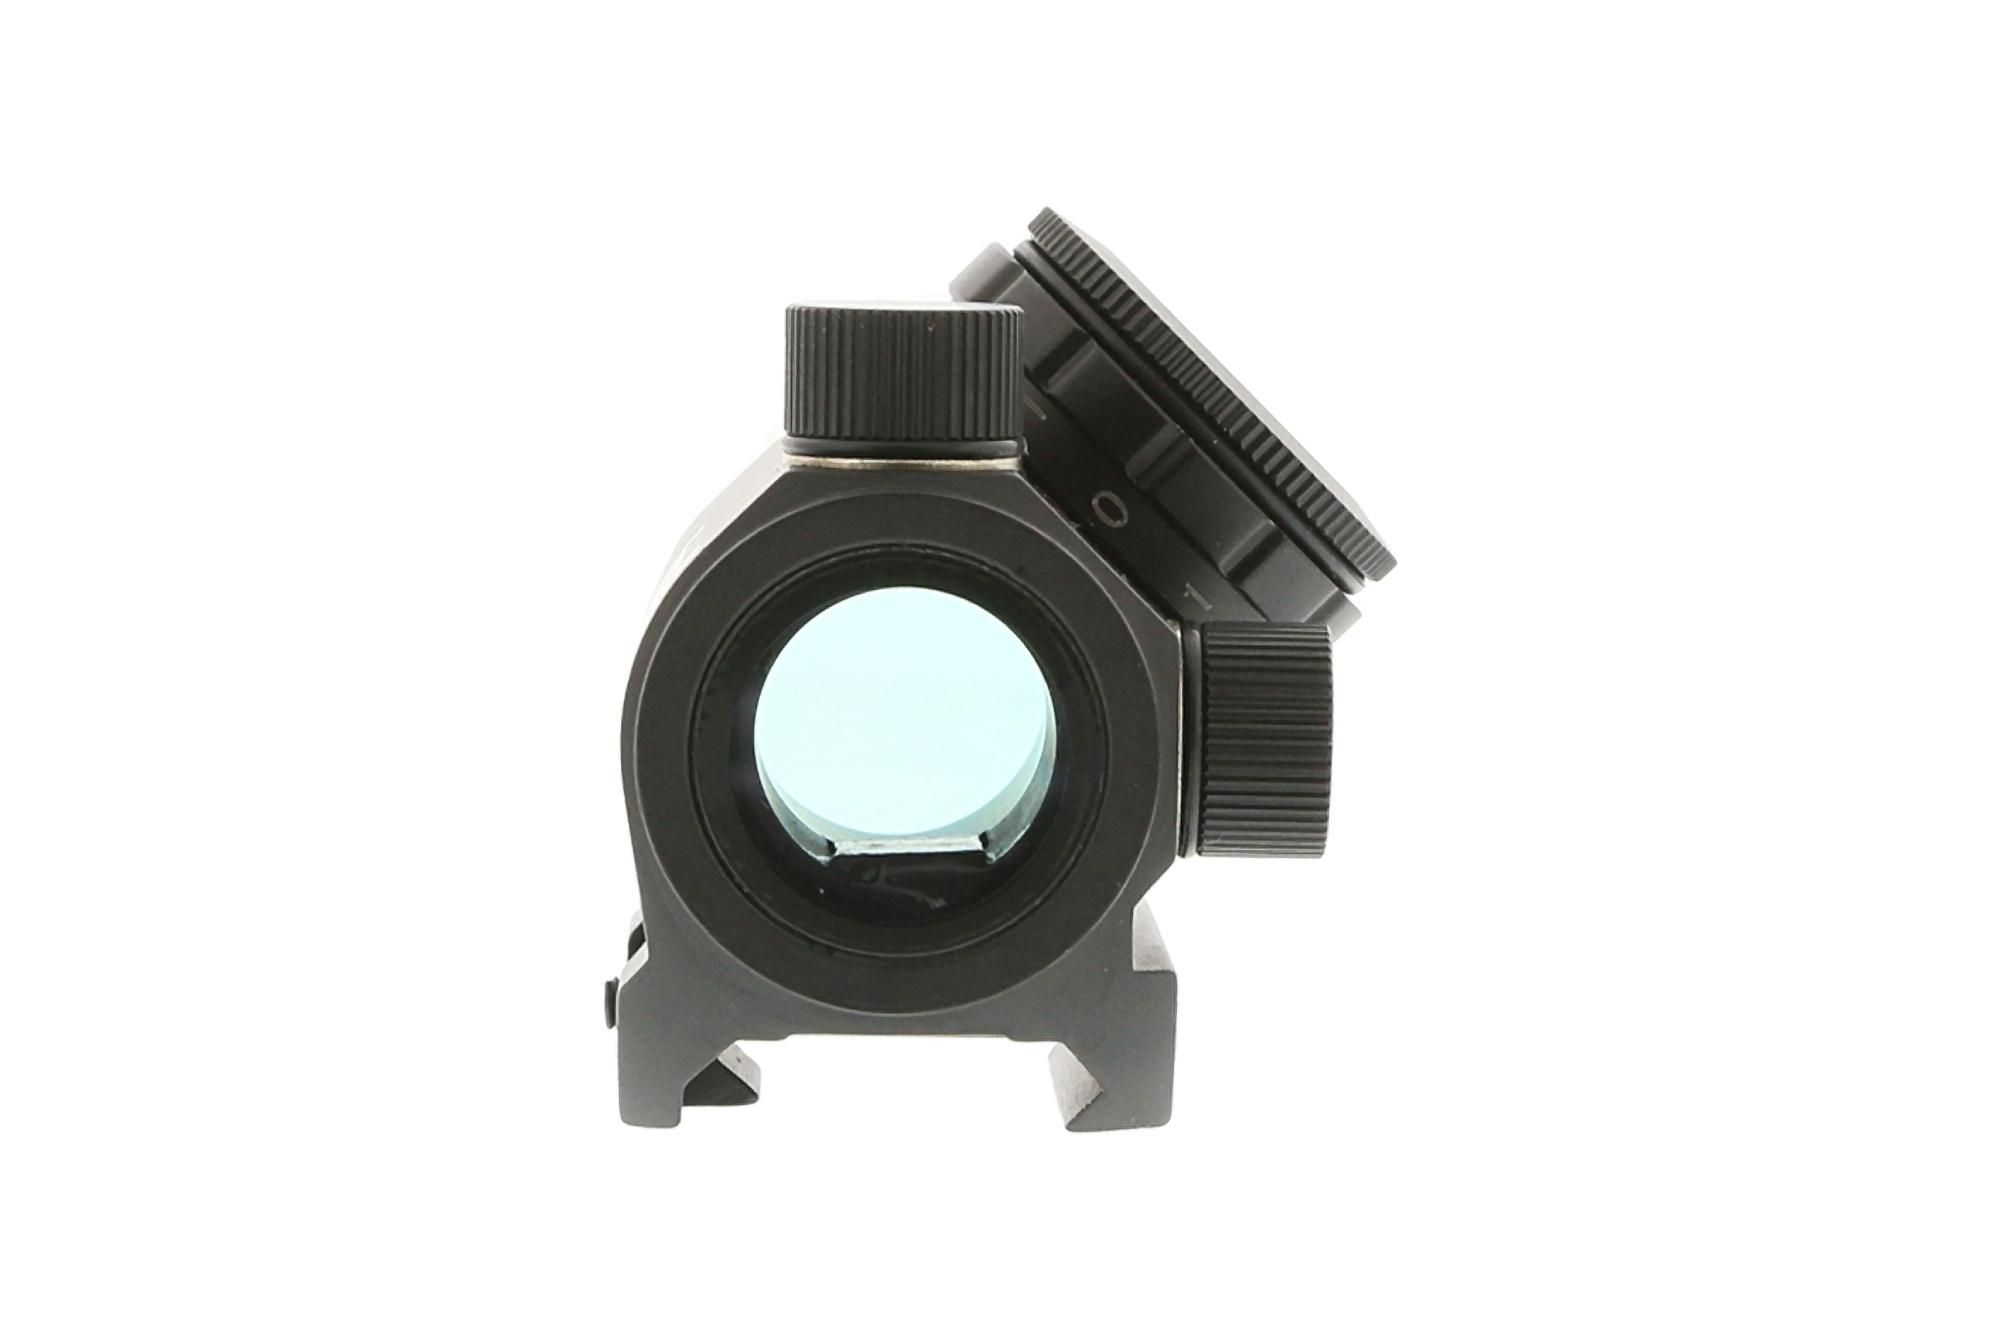 The bushnell microdot sight has fully multicoated amber lens designed for high resolution in wooded areas